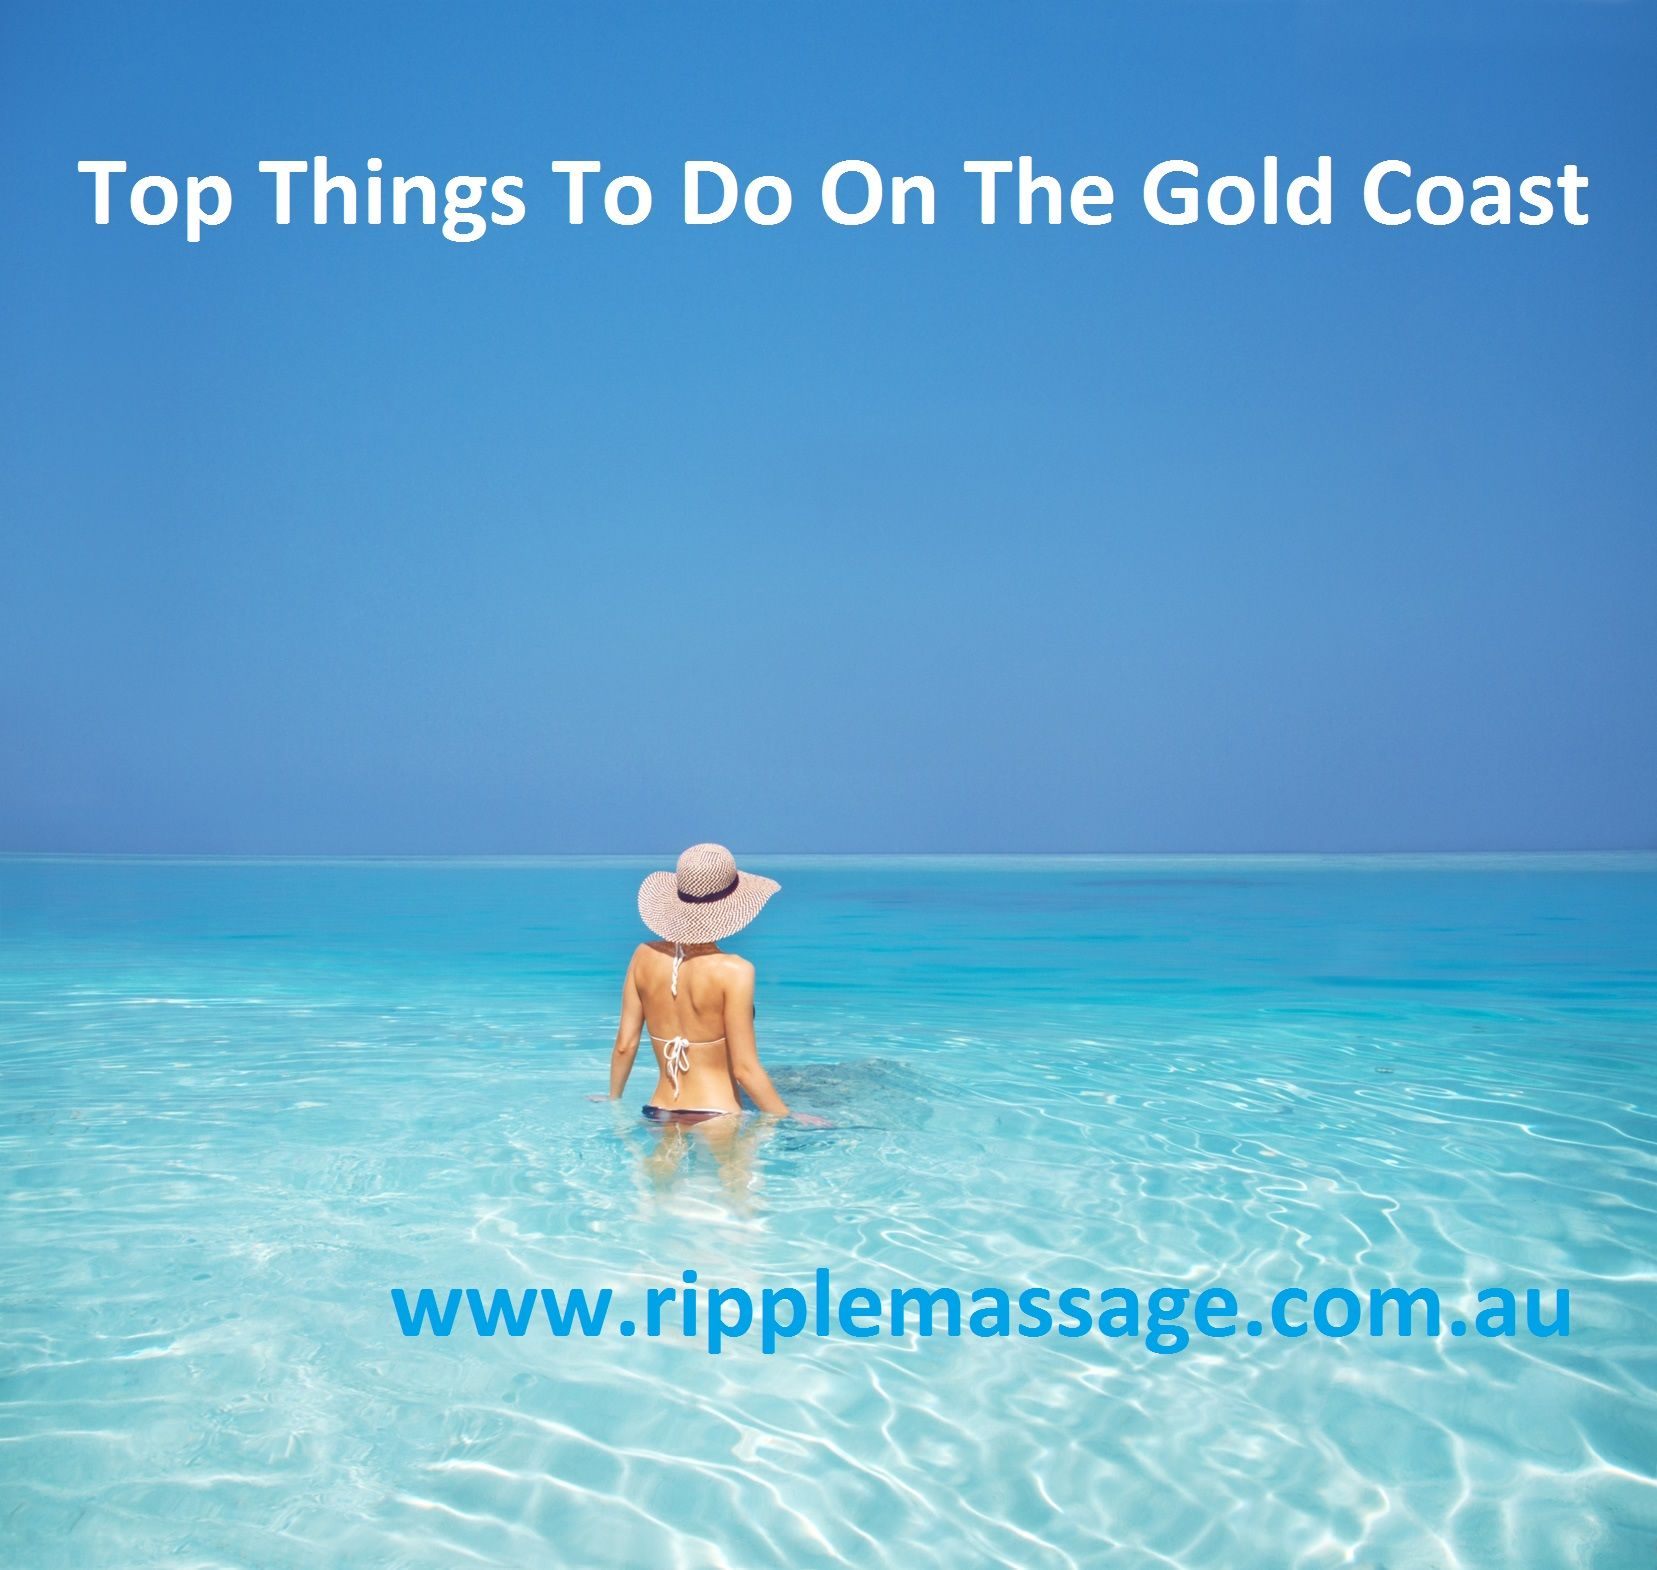 Top Things To Do On The Gold Coast   1. Get a Ripple massage   https://www.ripplemassage.com.au/locations/surfers-paradise-massage-gold-coast-info/   #goldcoastmassage #massagegoldcoast #dayspagoldcoast #goldcoastdayspa #goldcoast #healthretreatgoldcoast #watermarkhotel #bestdayspagoldcoast #watermarkhotelandspa